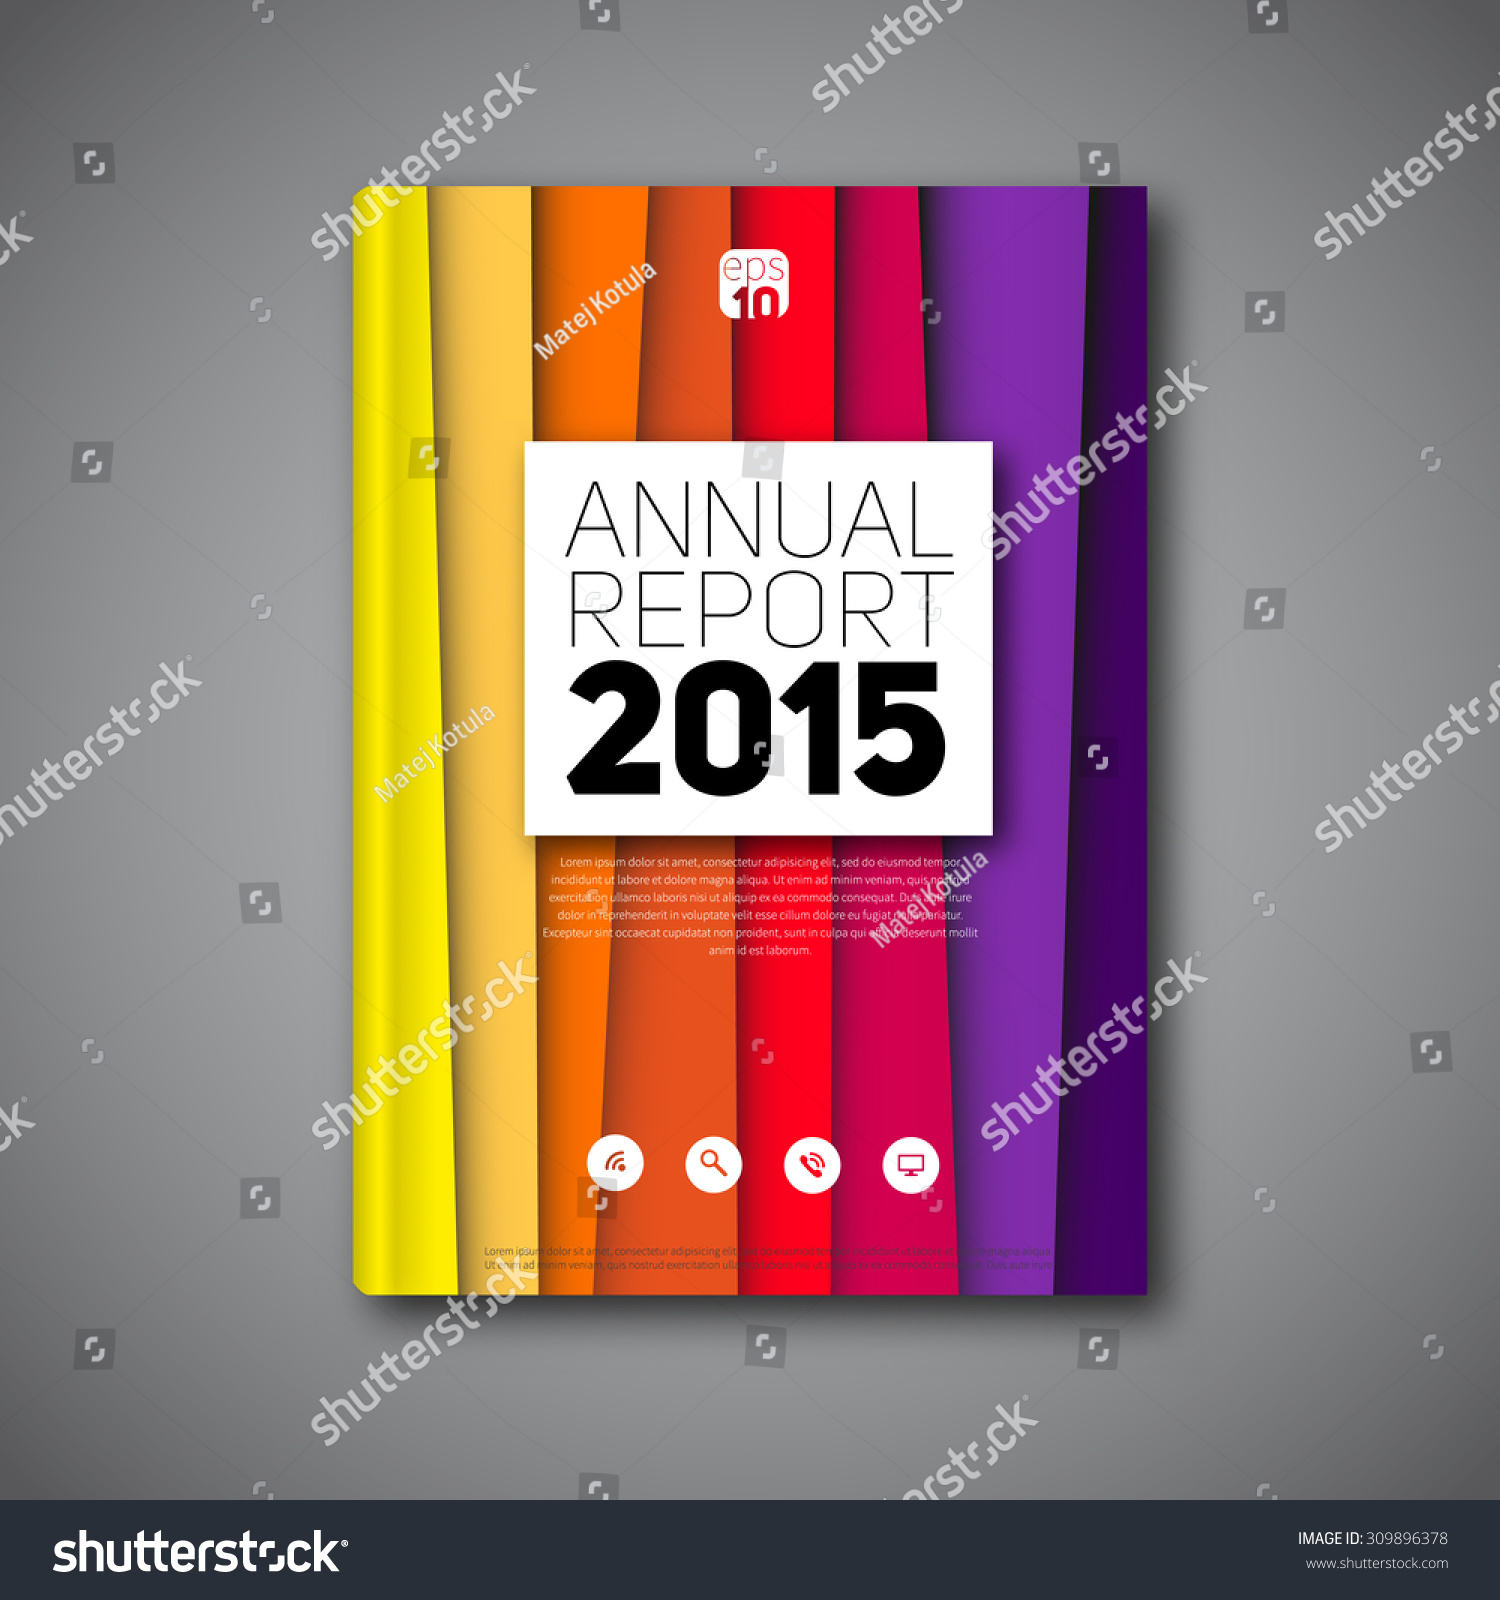 Abstract Modern Template Book Cover : Modern abstract lineart book cover brochure stock vector